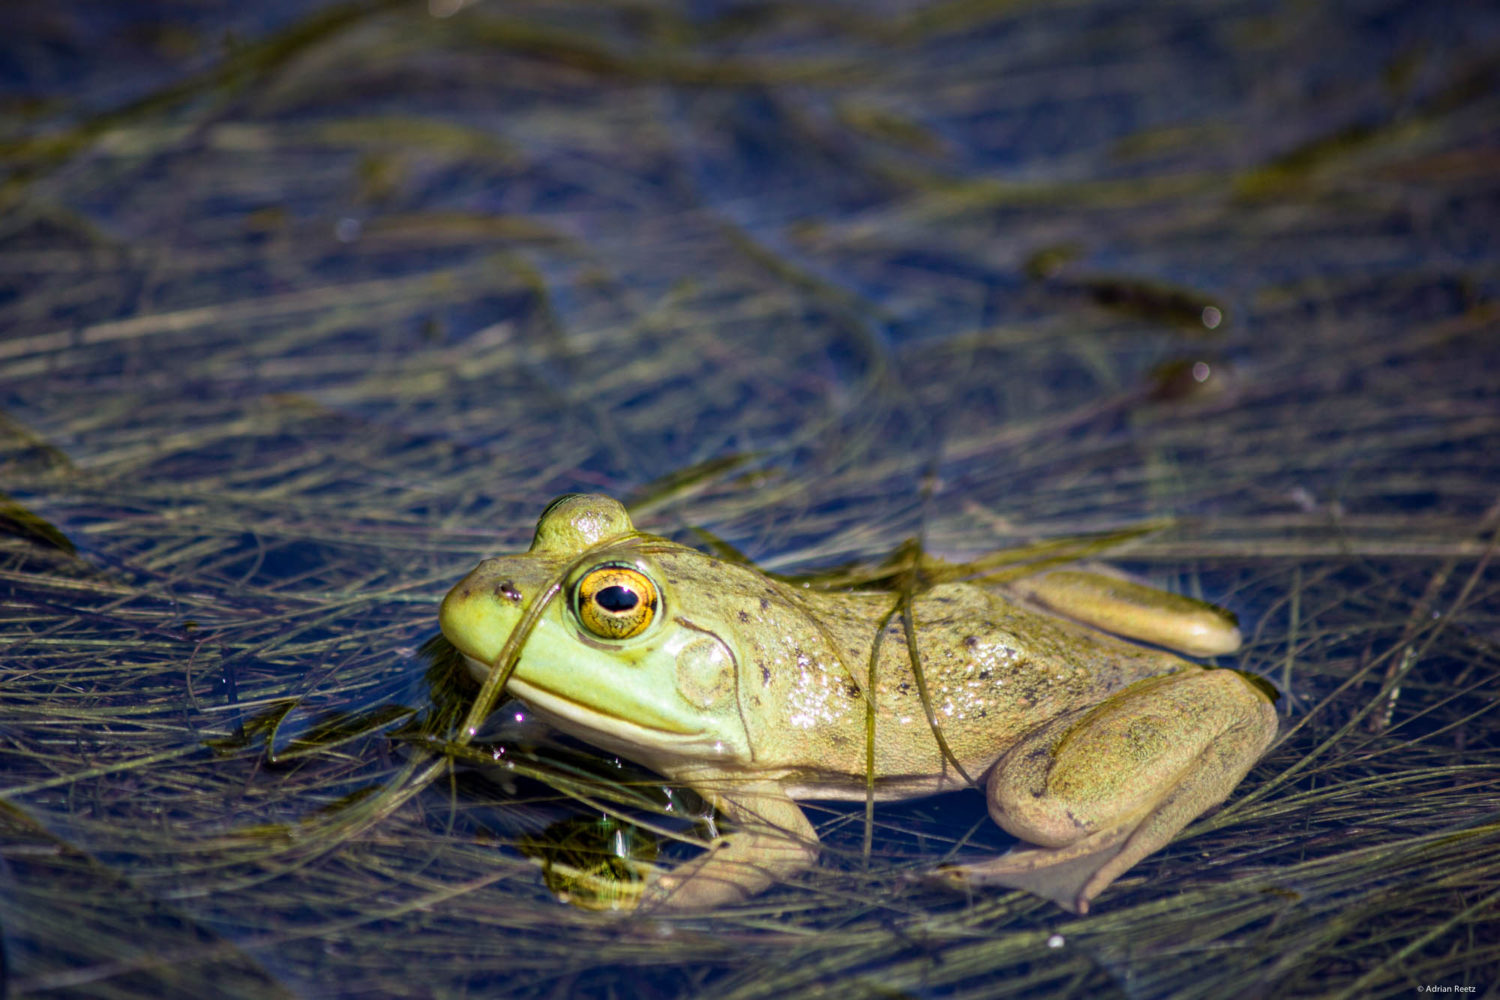 American bullfrog